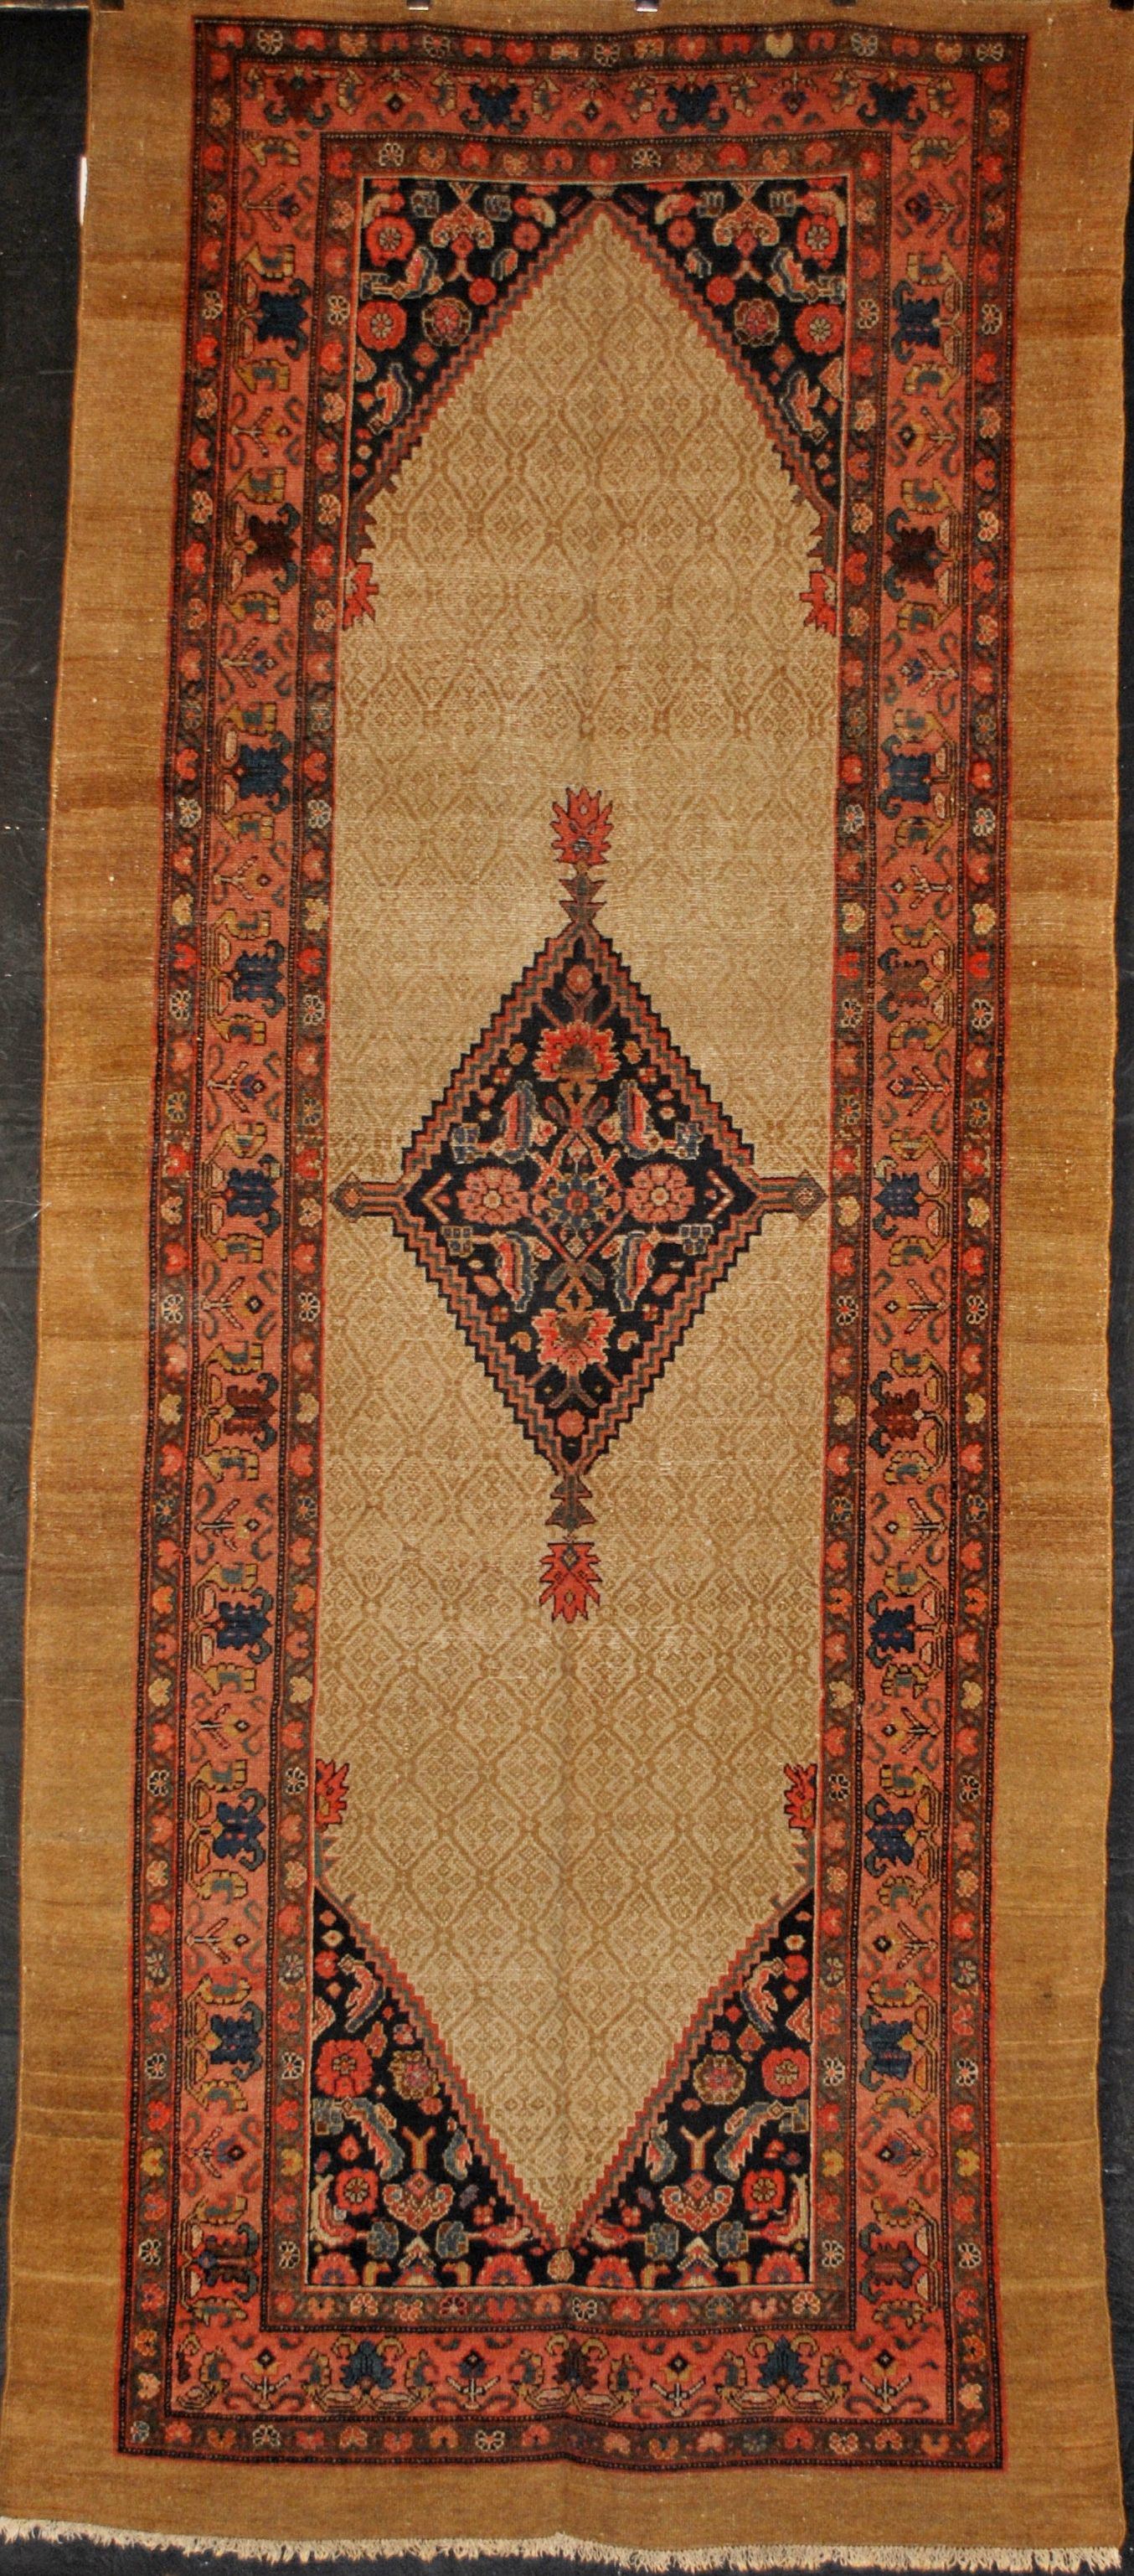 Farzin Rugs Inc Is Located In The Heart Of Slo Street Dallas Design District With Best Selection Antique Fort Worth